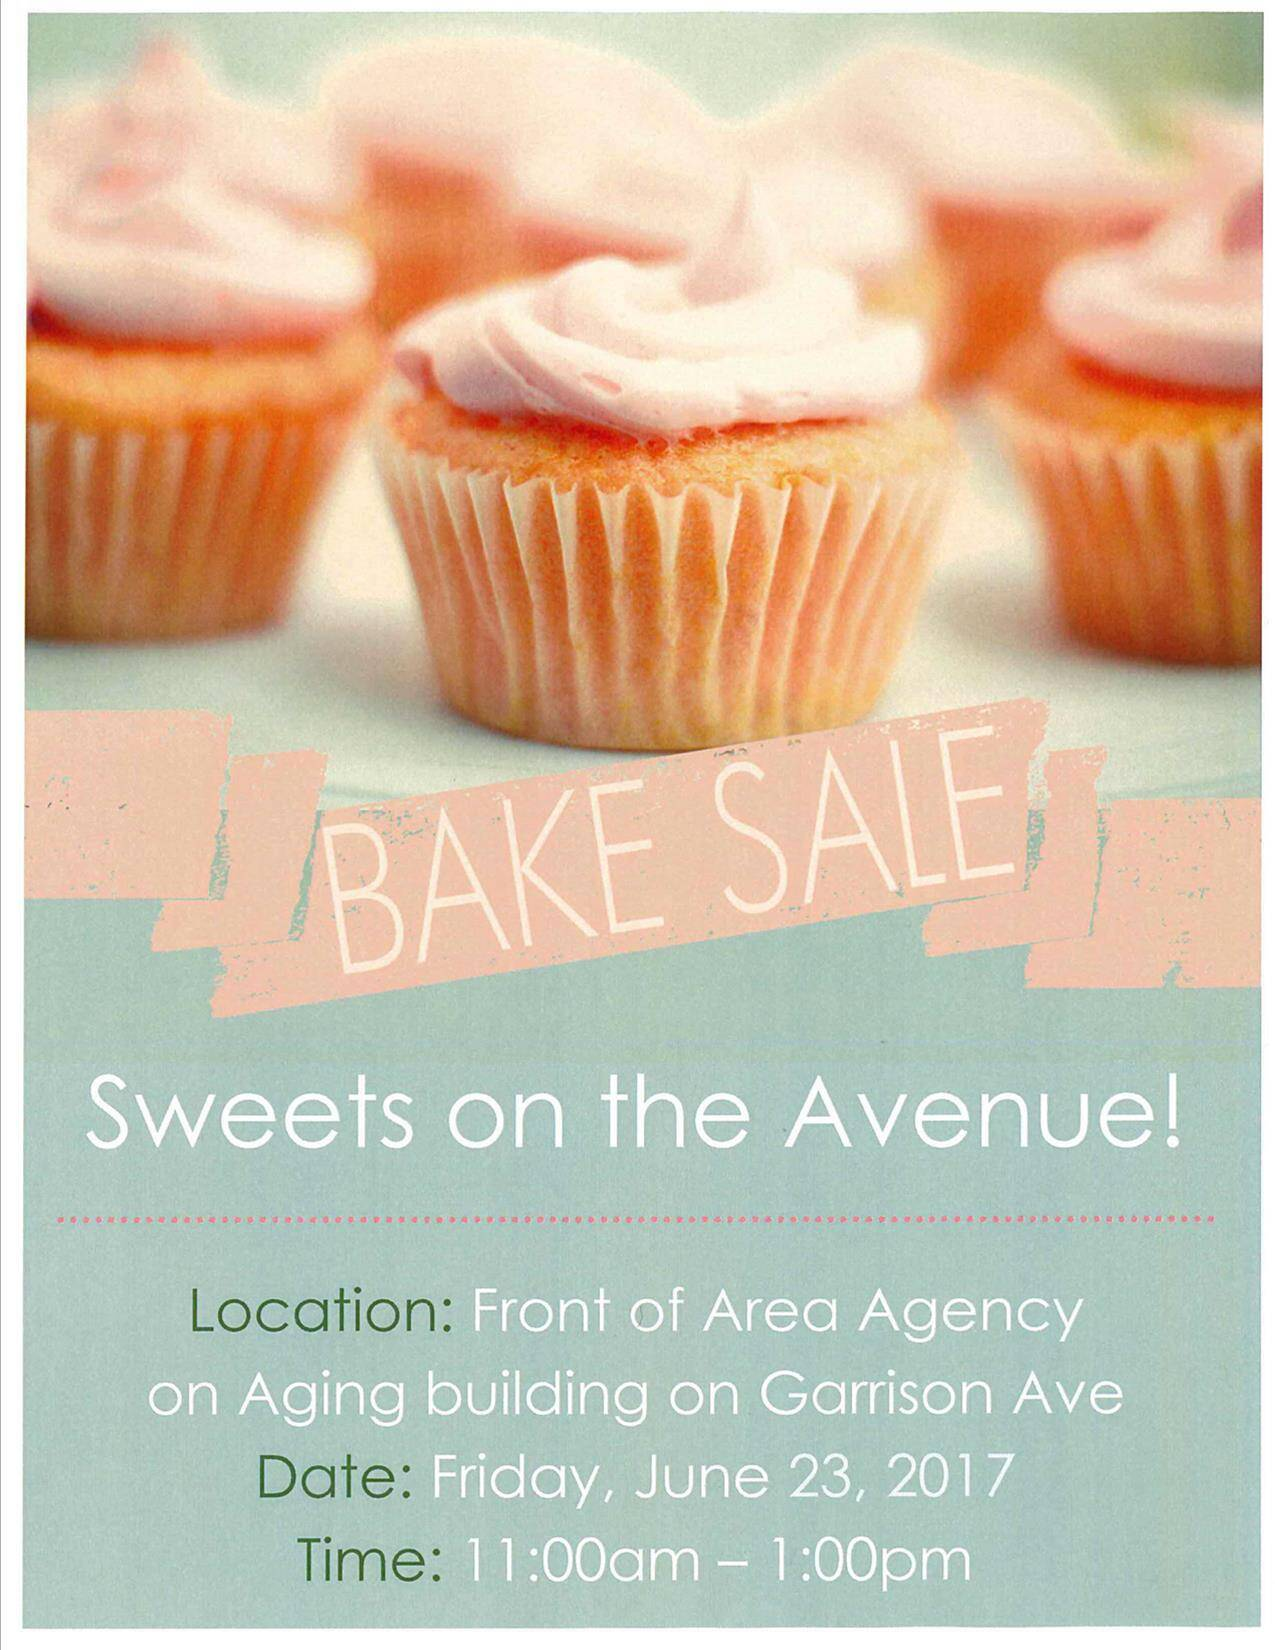 bake sale flyers free flyer designs - HD 1275×1650